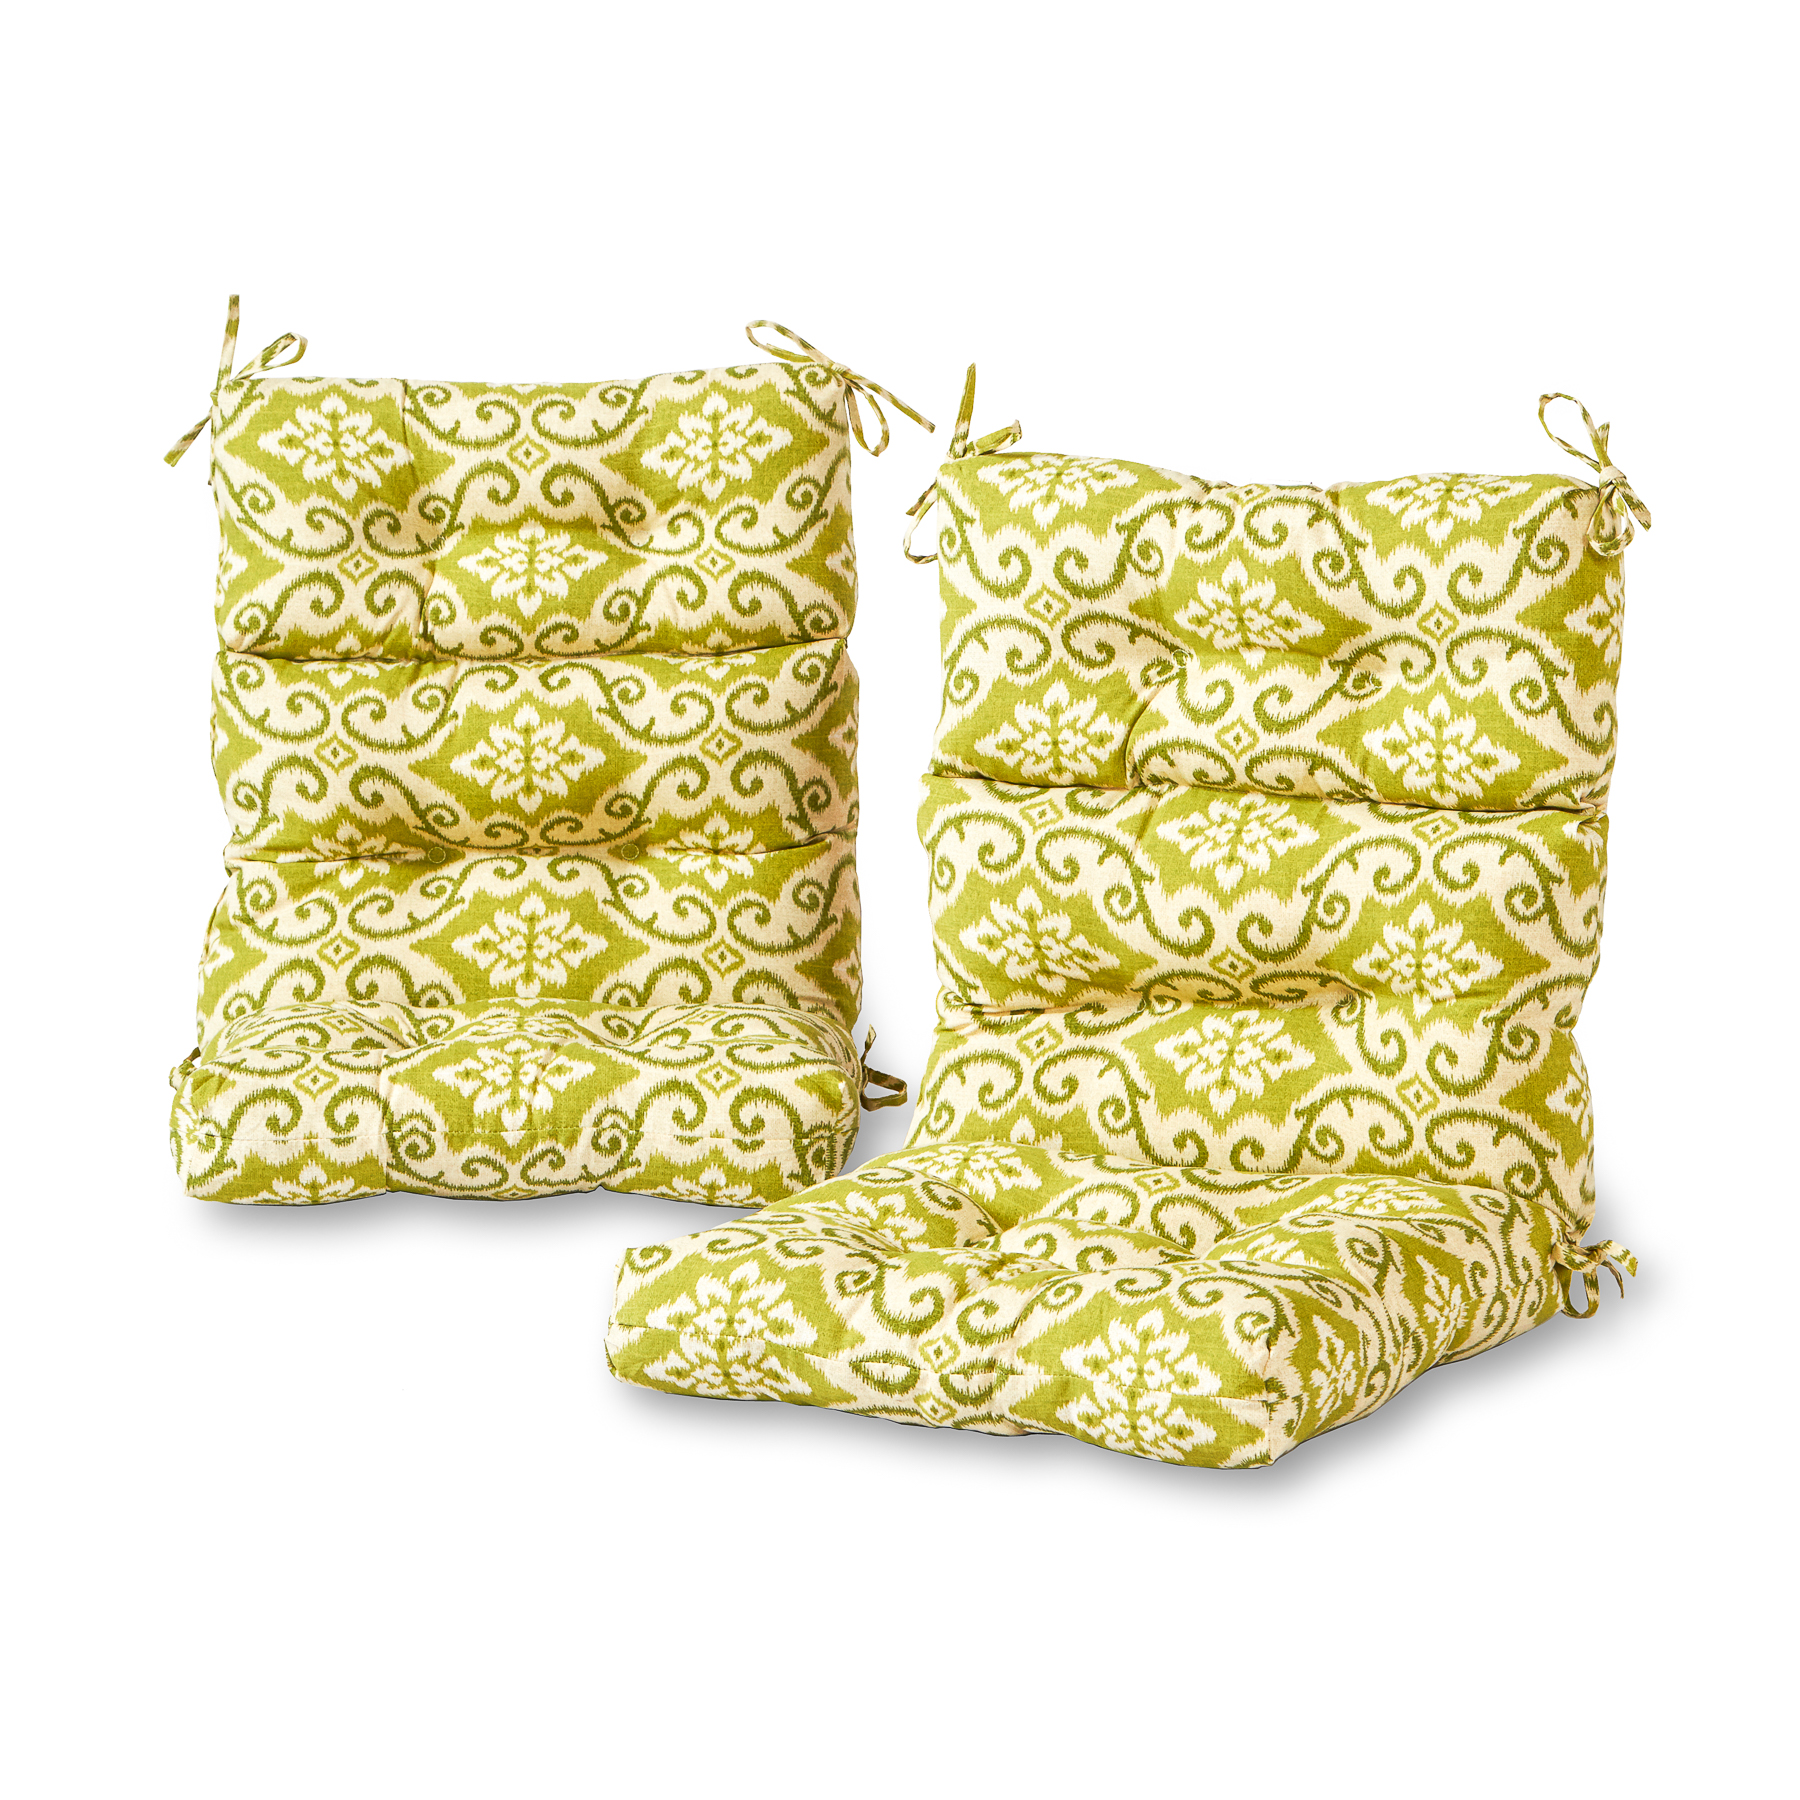 Greendale Home Fashions Green Ikat Outdoor High Back Chair Cushion, Set of 2